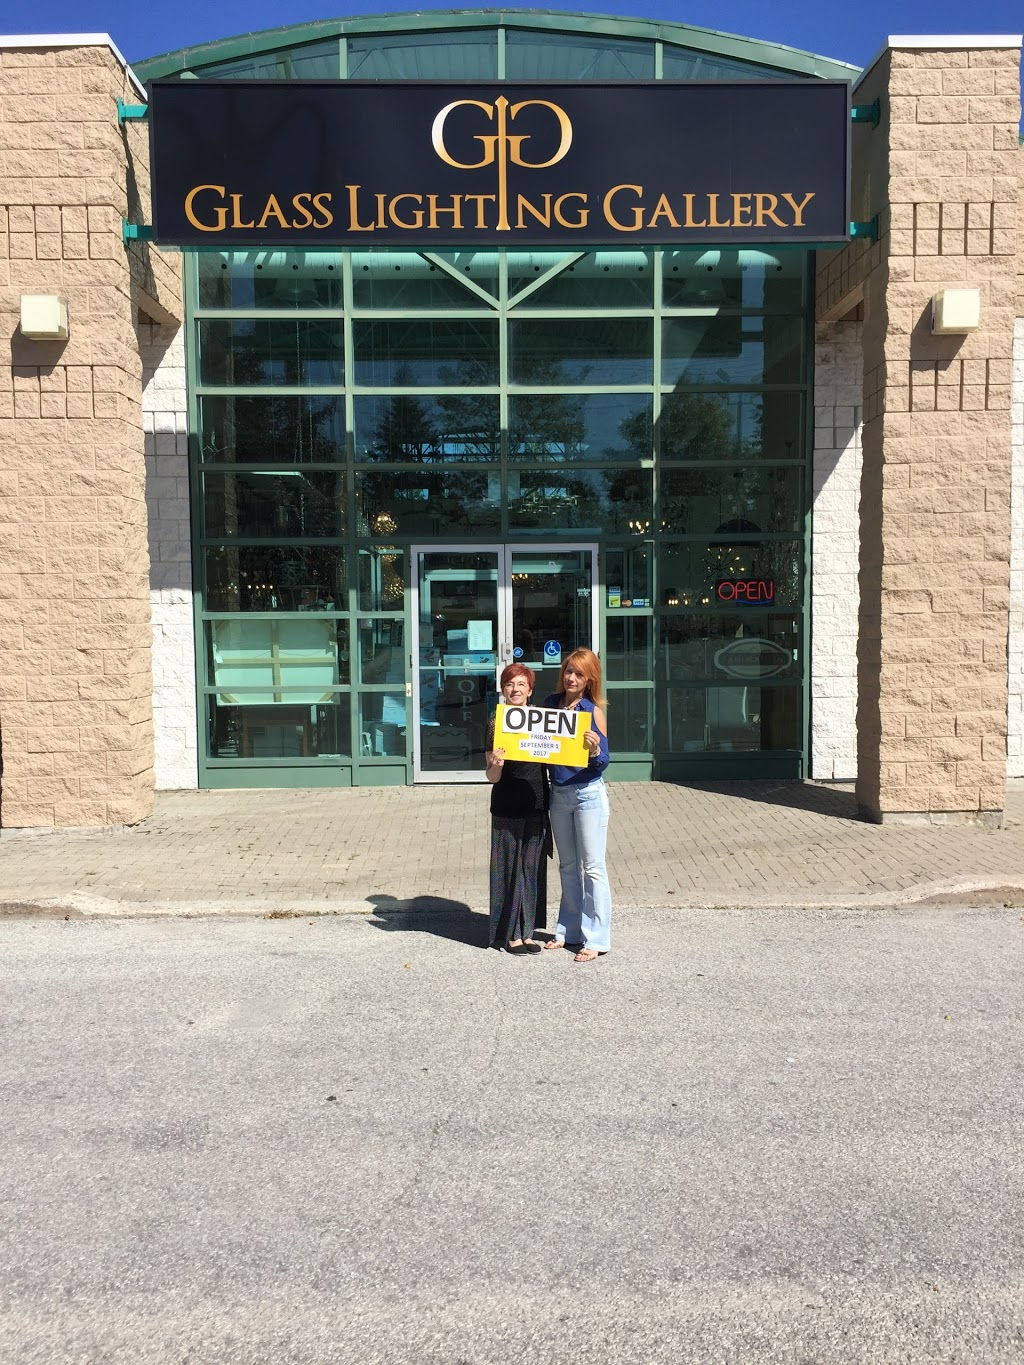 Glass Lighting Gallery & Home Finishings | home goods store | 408 Dunlop St W, Barrie, ON L4N 1C2, Canada | 7057227772 OR +1 705-722-7772